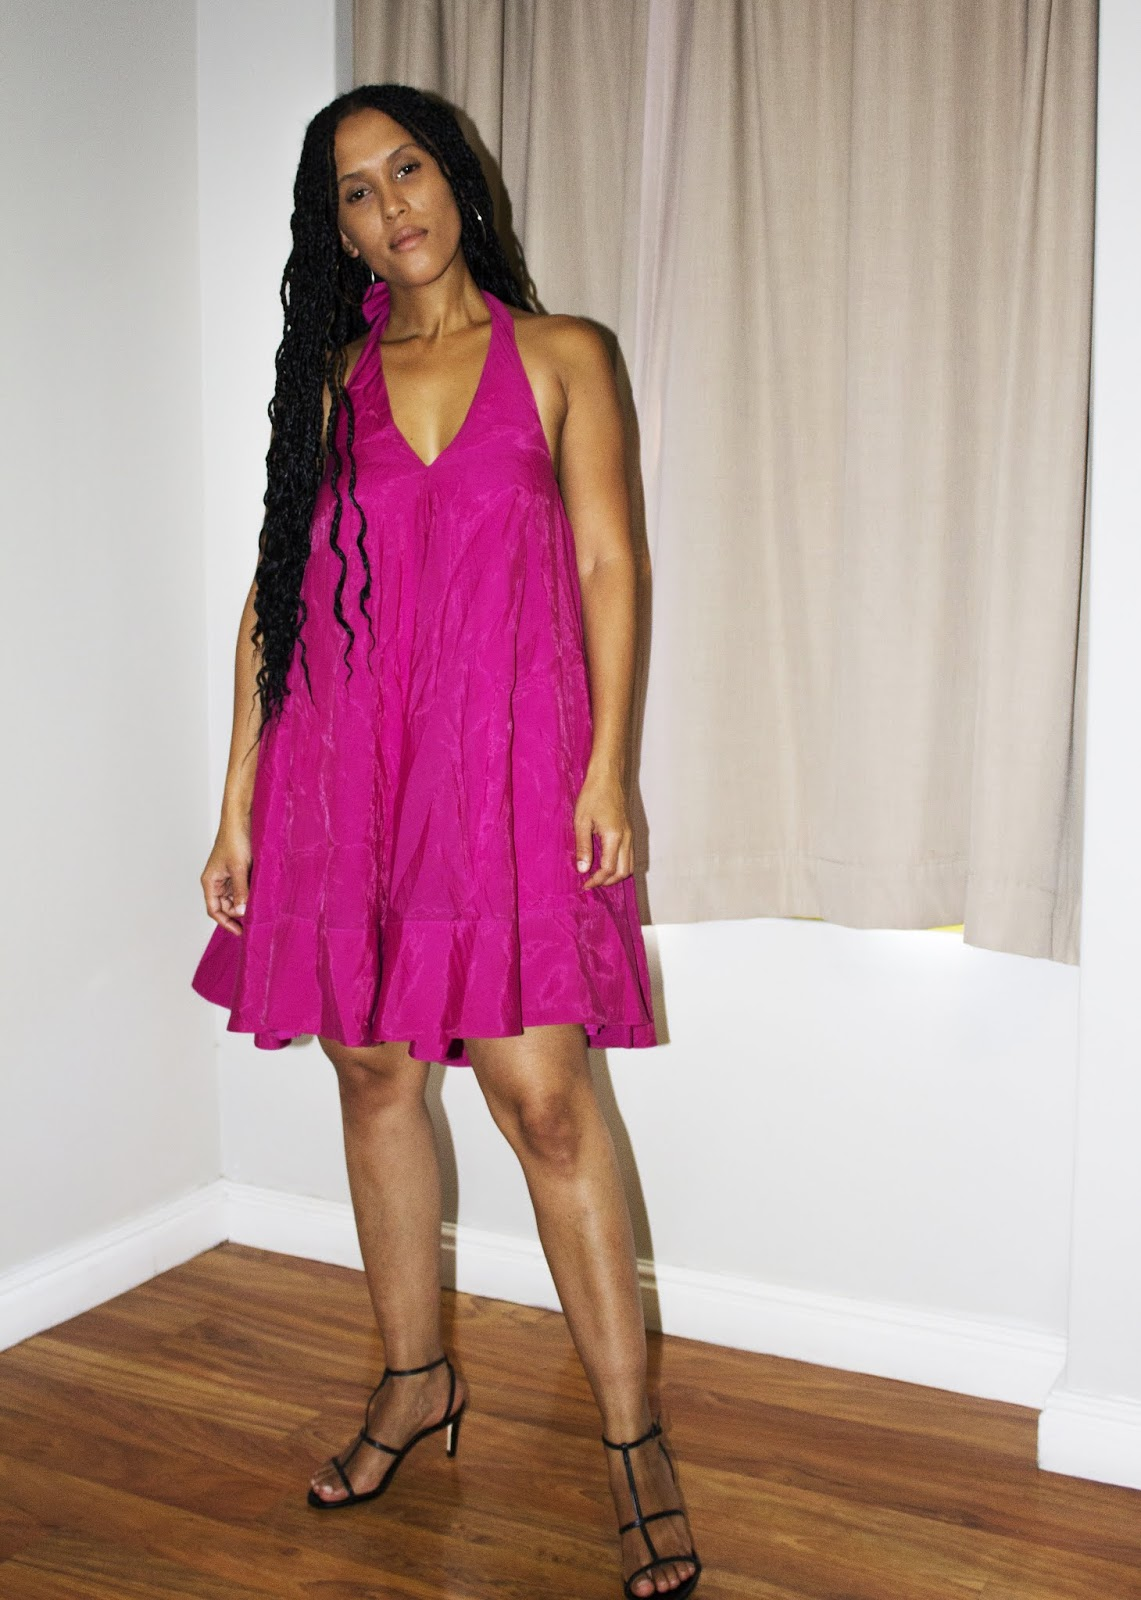 Liezel-Esquire-how-to-wear-bright-colours